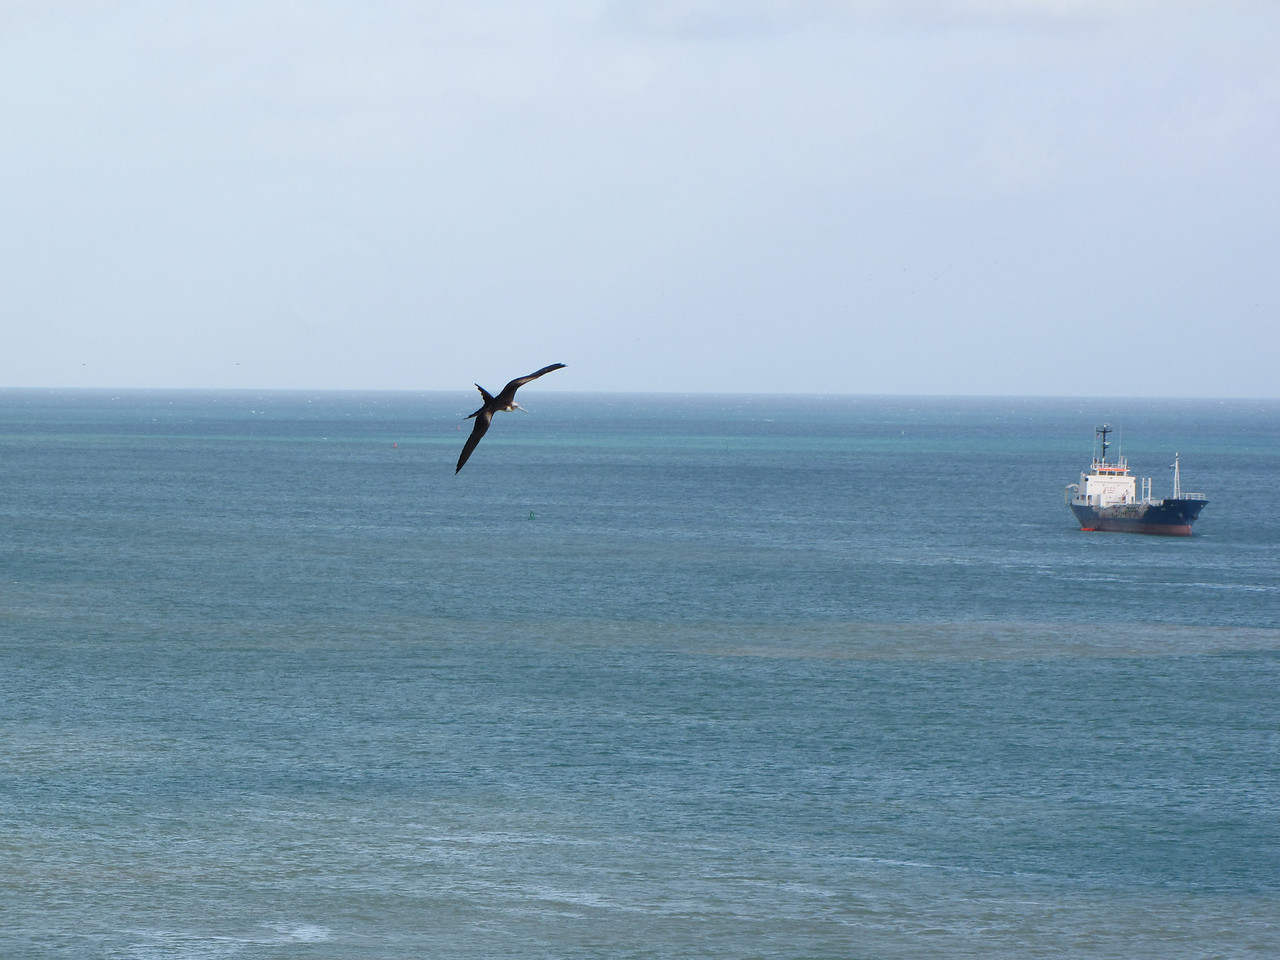 We're being followed by several Frigate Birds.